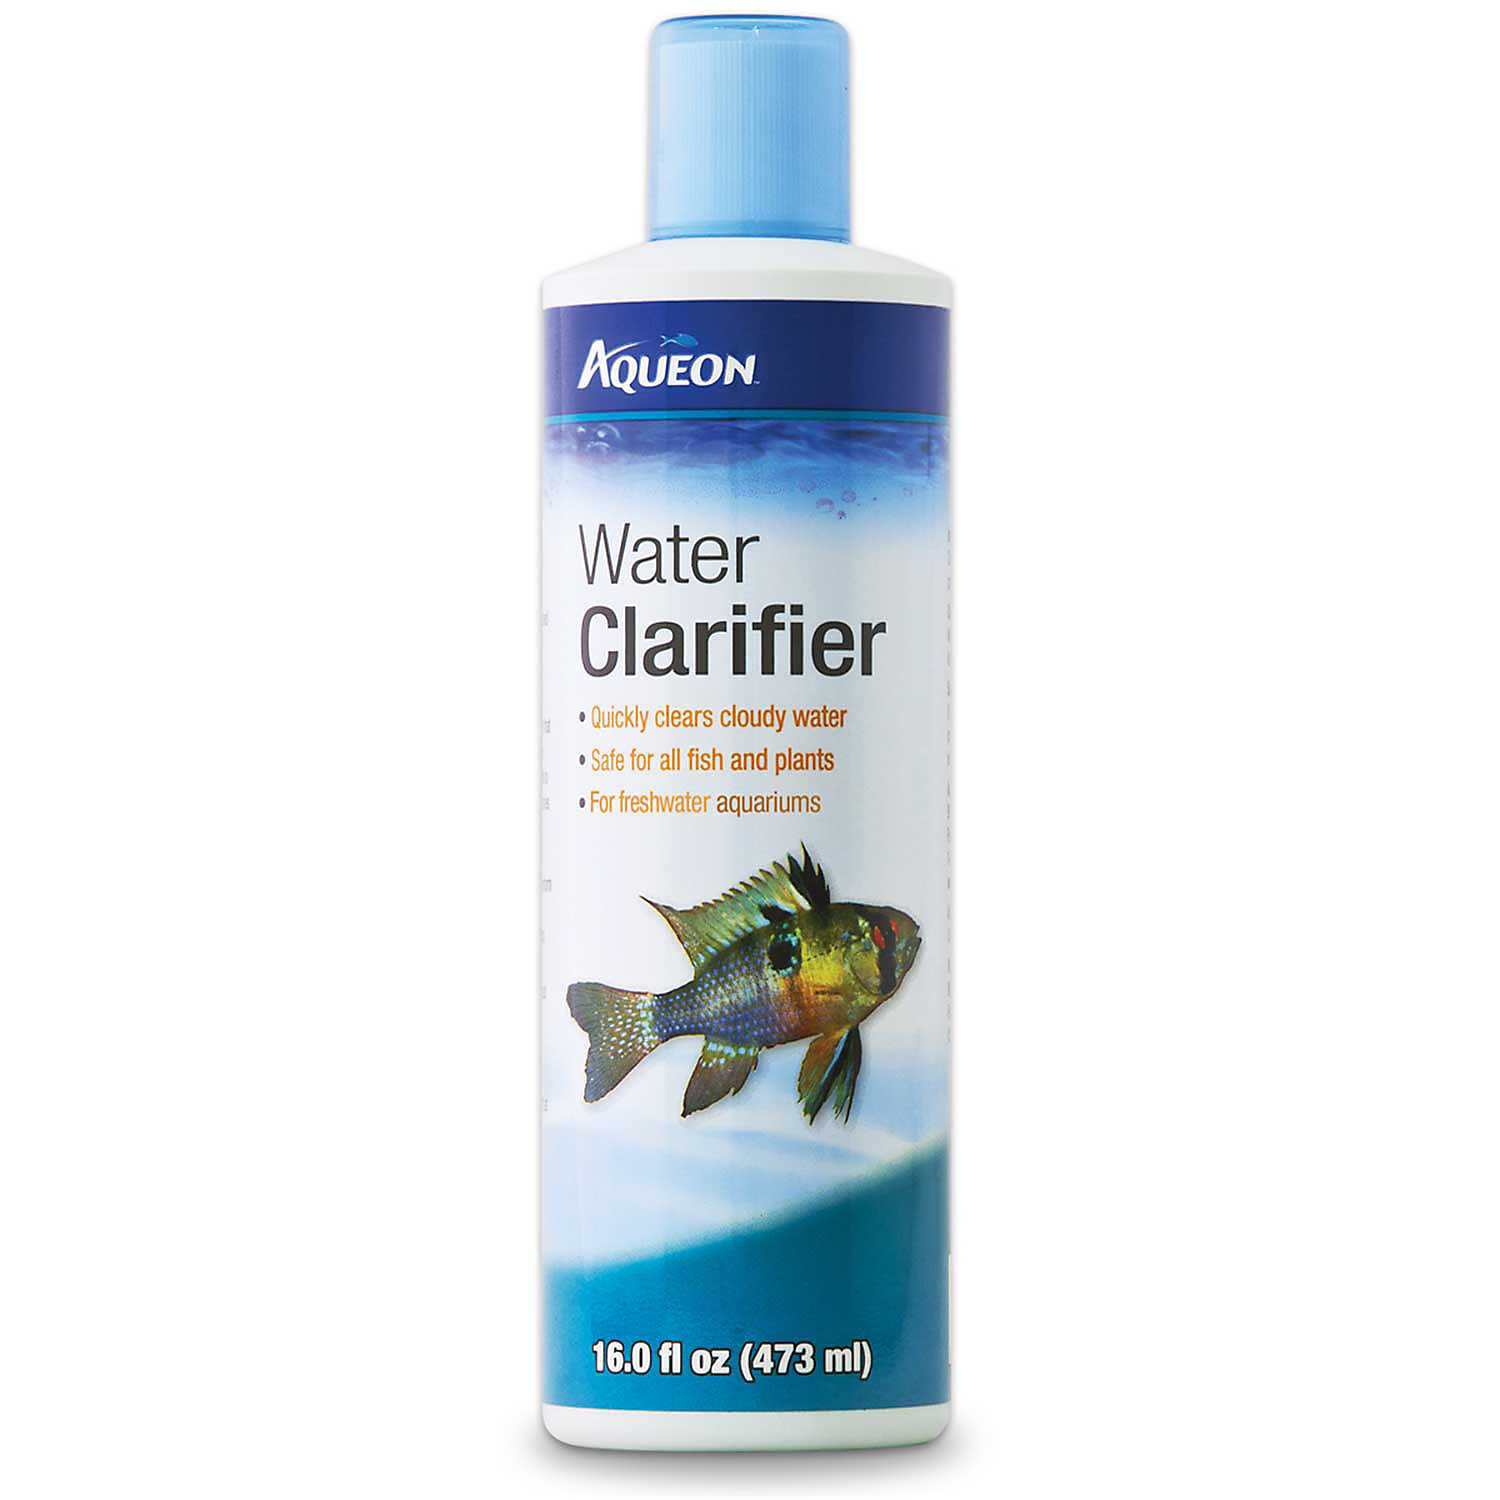 Aqueon Water Clarifier